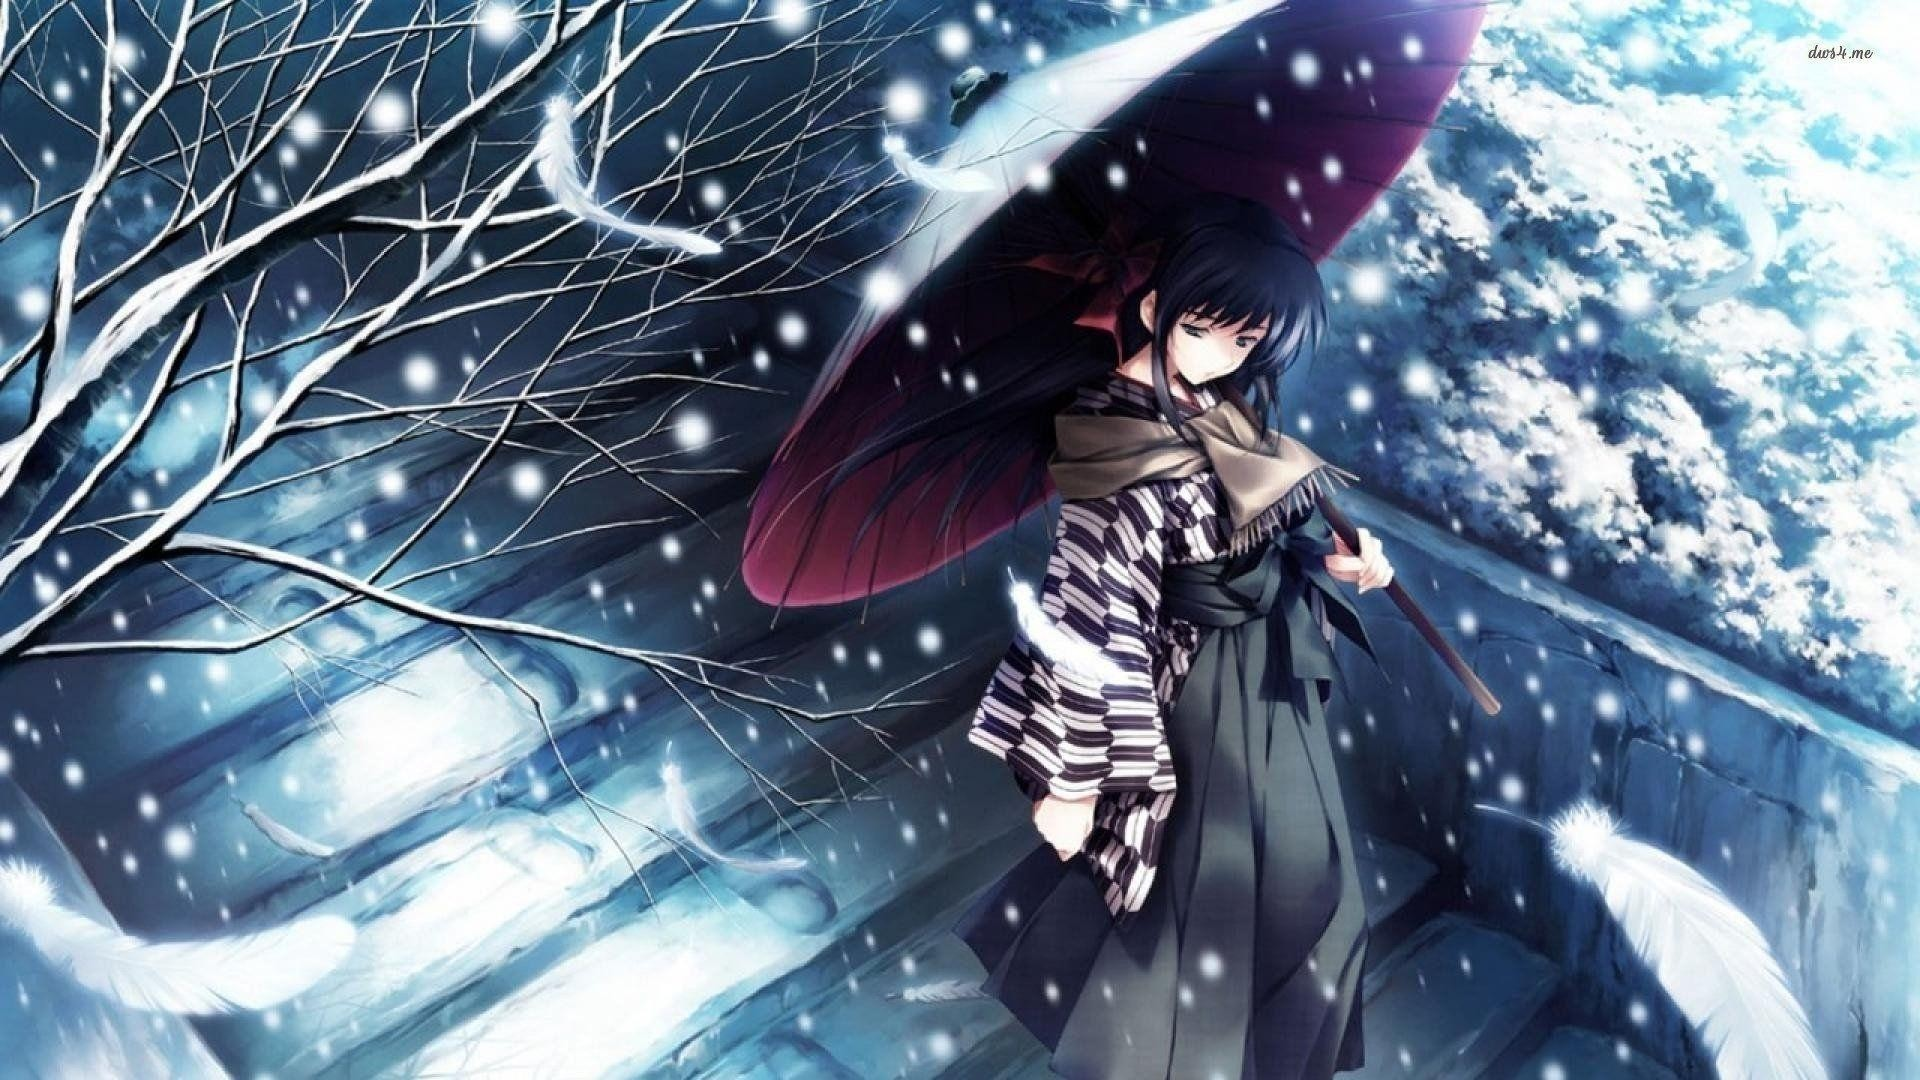 Anime Snow Background Posted By Ryan Walker